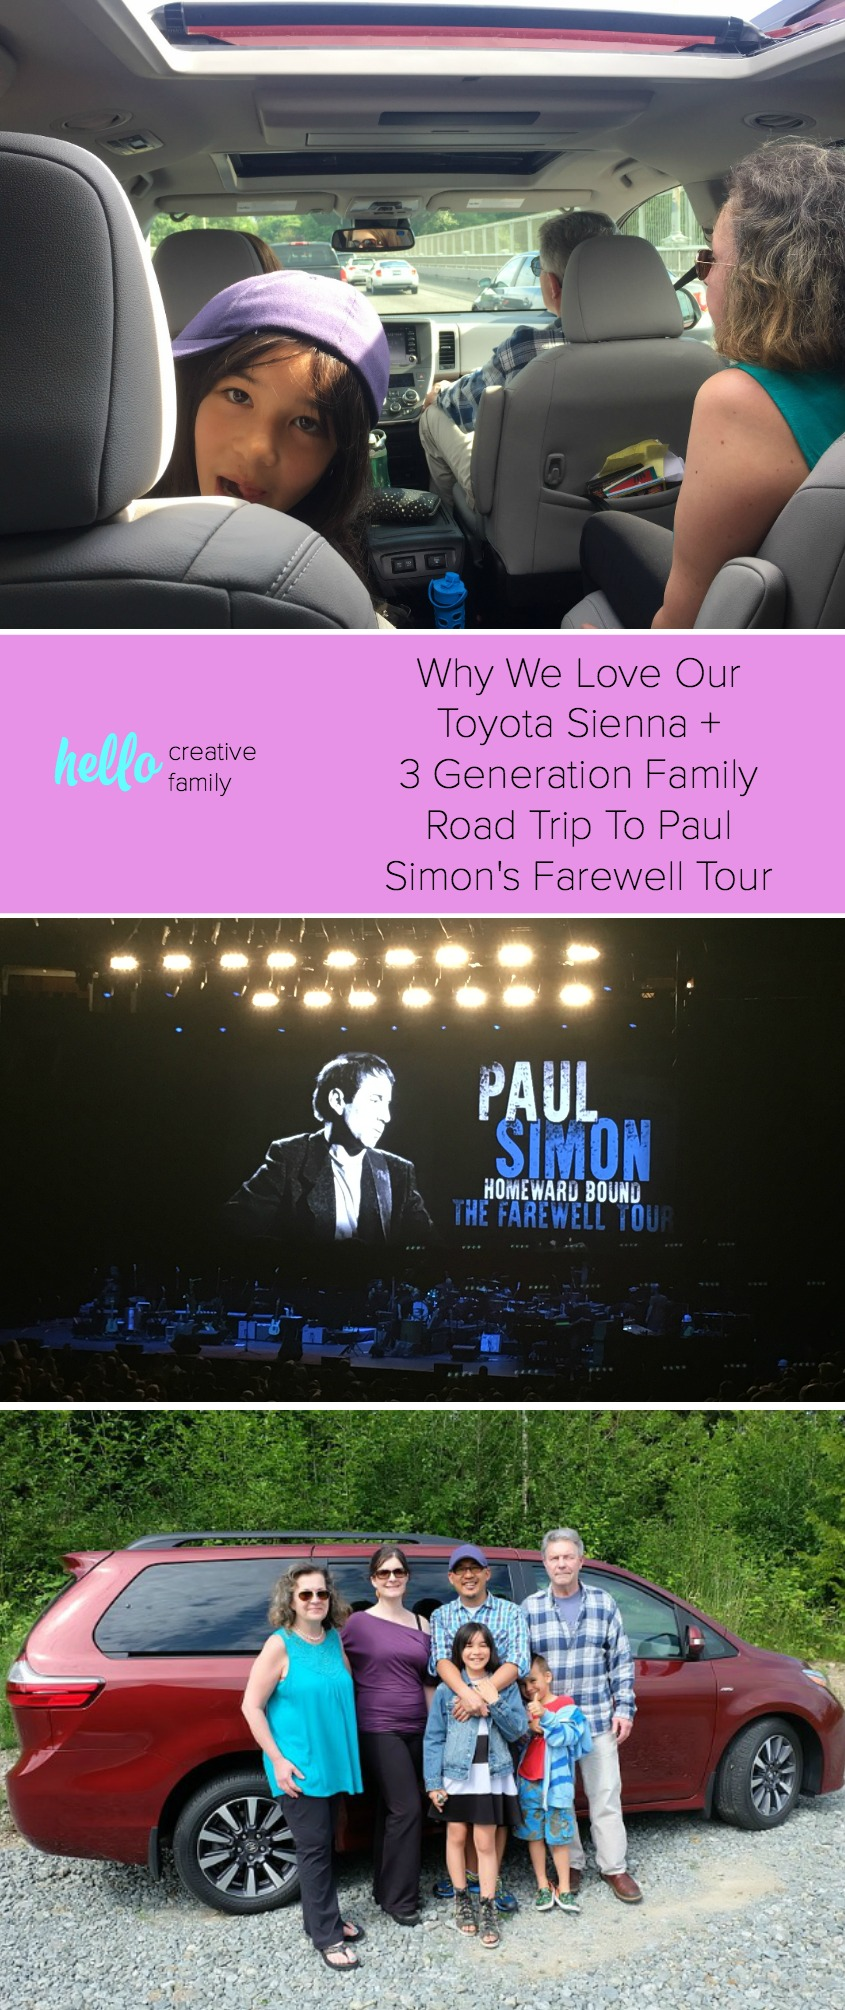 Hello Creative Family takes a road trip with three generations of their family to see the Paul Simon Concert in a 2018 Toyota Sienna. They share the experience plus a vehicle review of why the Toyota Sienna is the only vehicle the checks all the boxes for their family! #minivanmom #toyotasienna #minivan #vehiclereview #sponsored